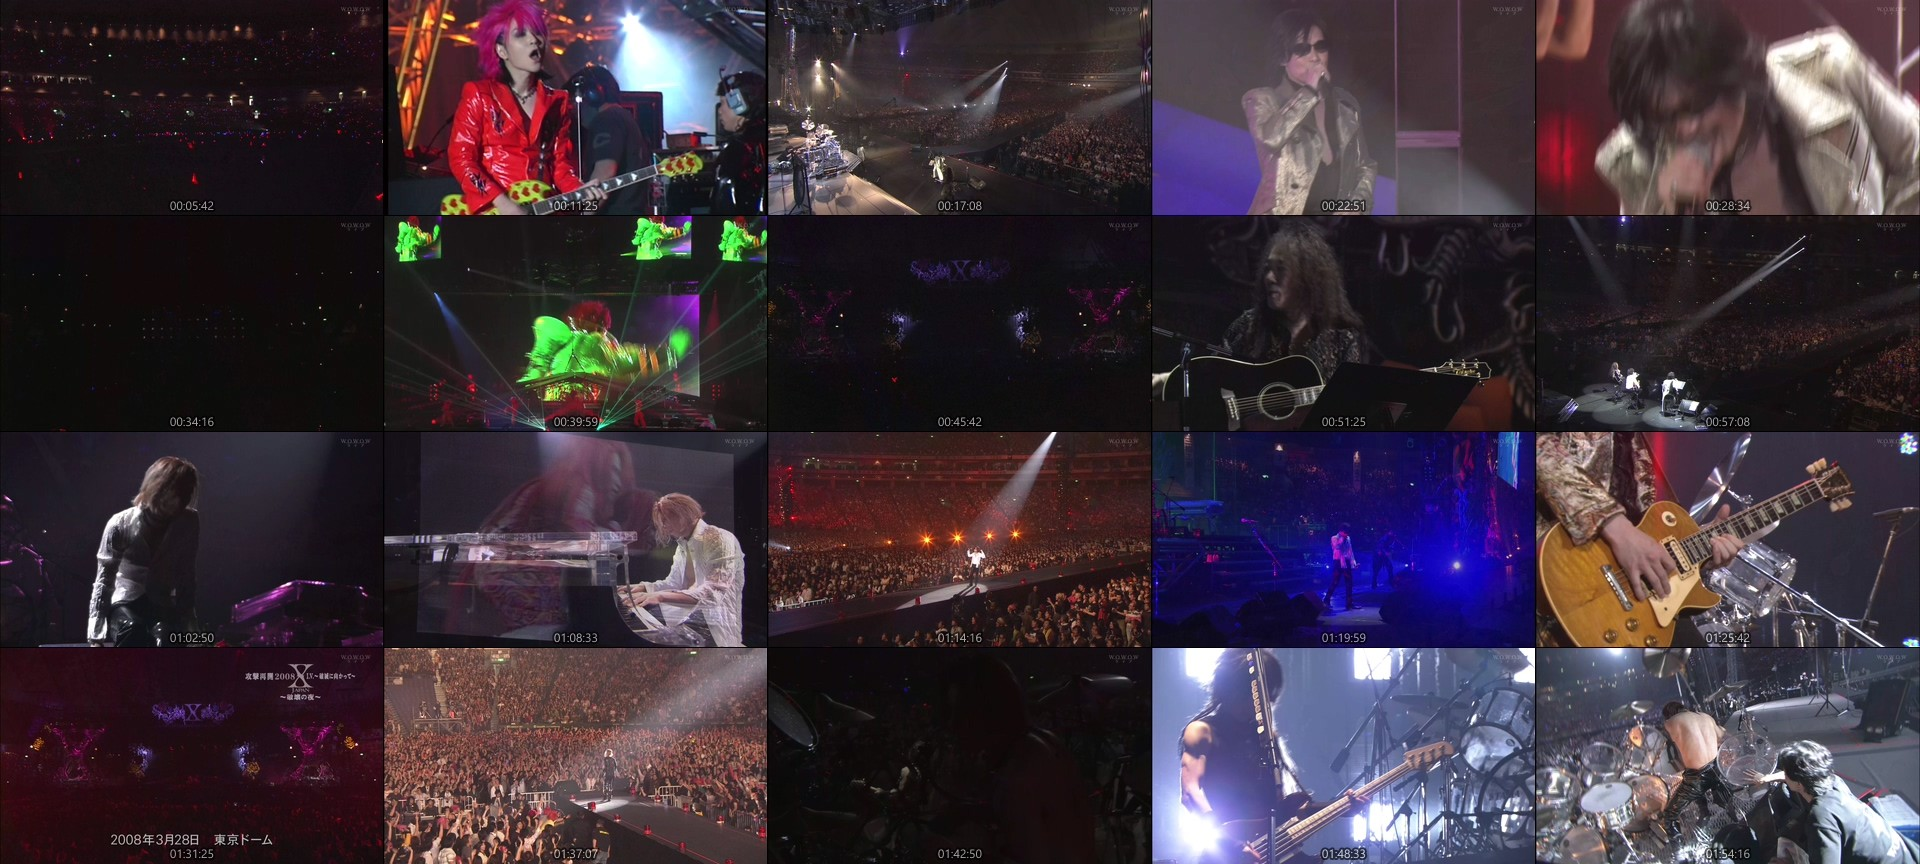 X JAPAN – X JAPAN to resume its attack in 2008 I.V. ~towards destruction~ / ~Night of Destruction~ (WOWOW Live 2020.09.10)